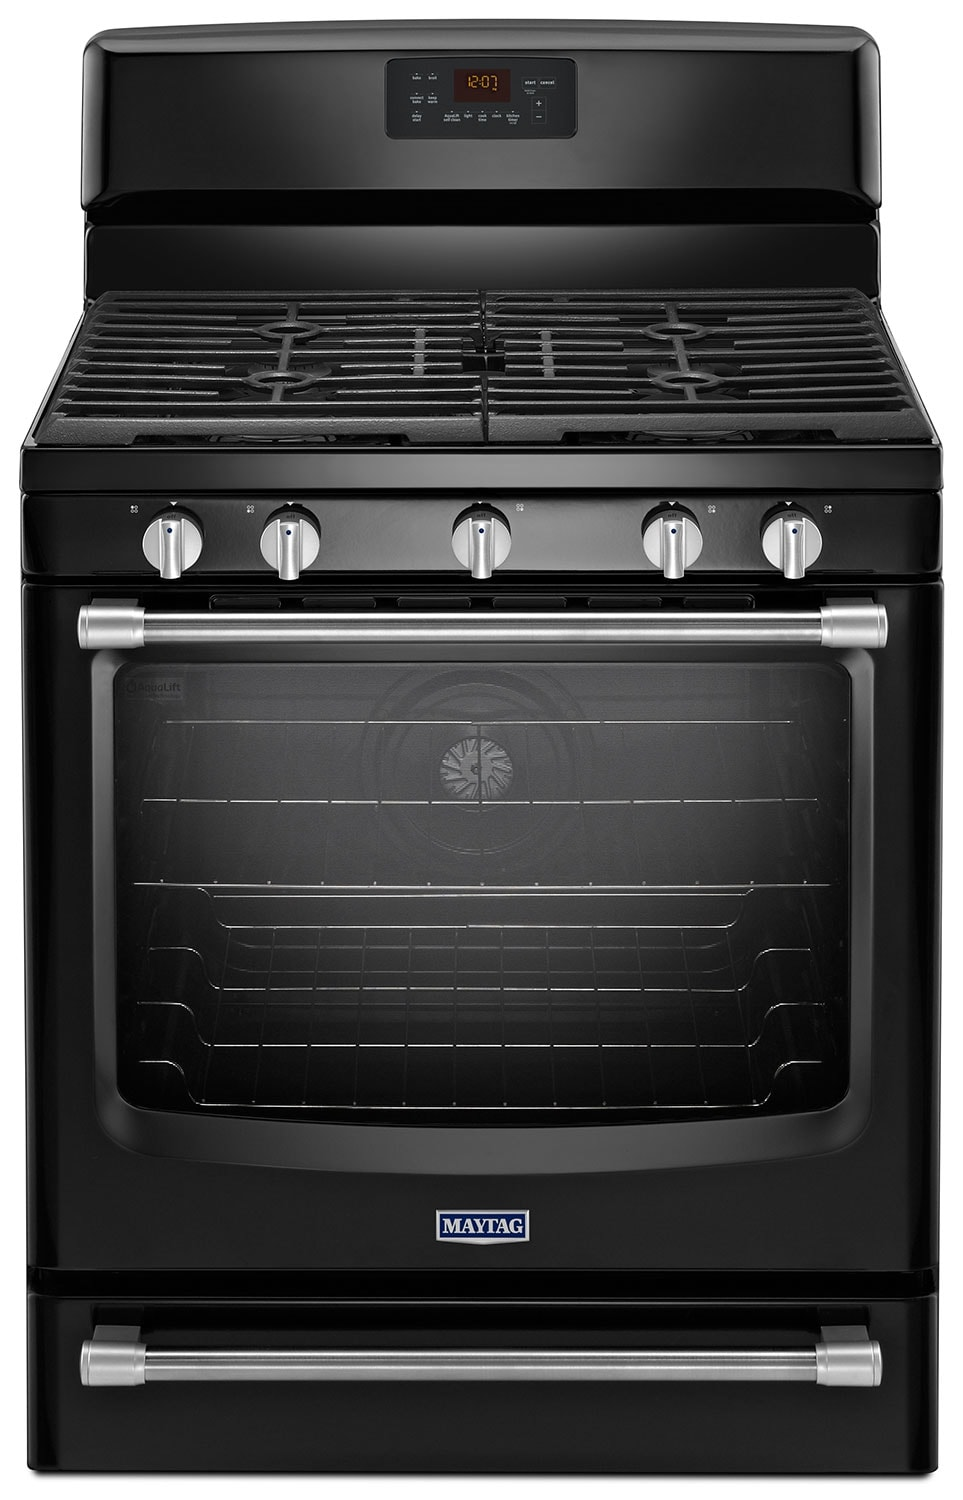 Cooking Products - Maytag Black Freestanding Gas Convection Range (5.8 Cu. Ft.) - MGR8700DE